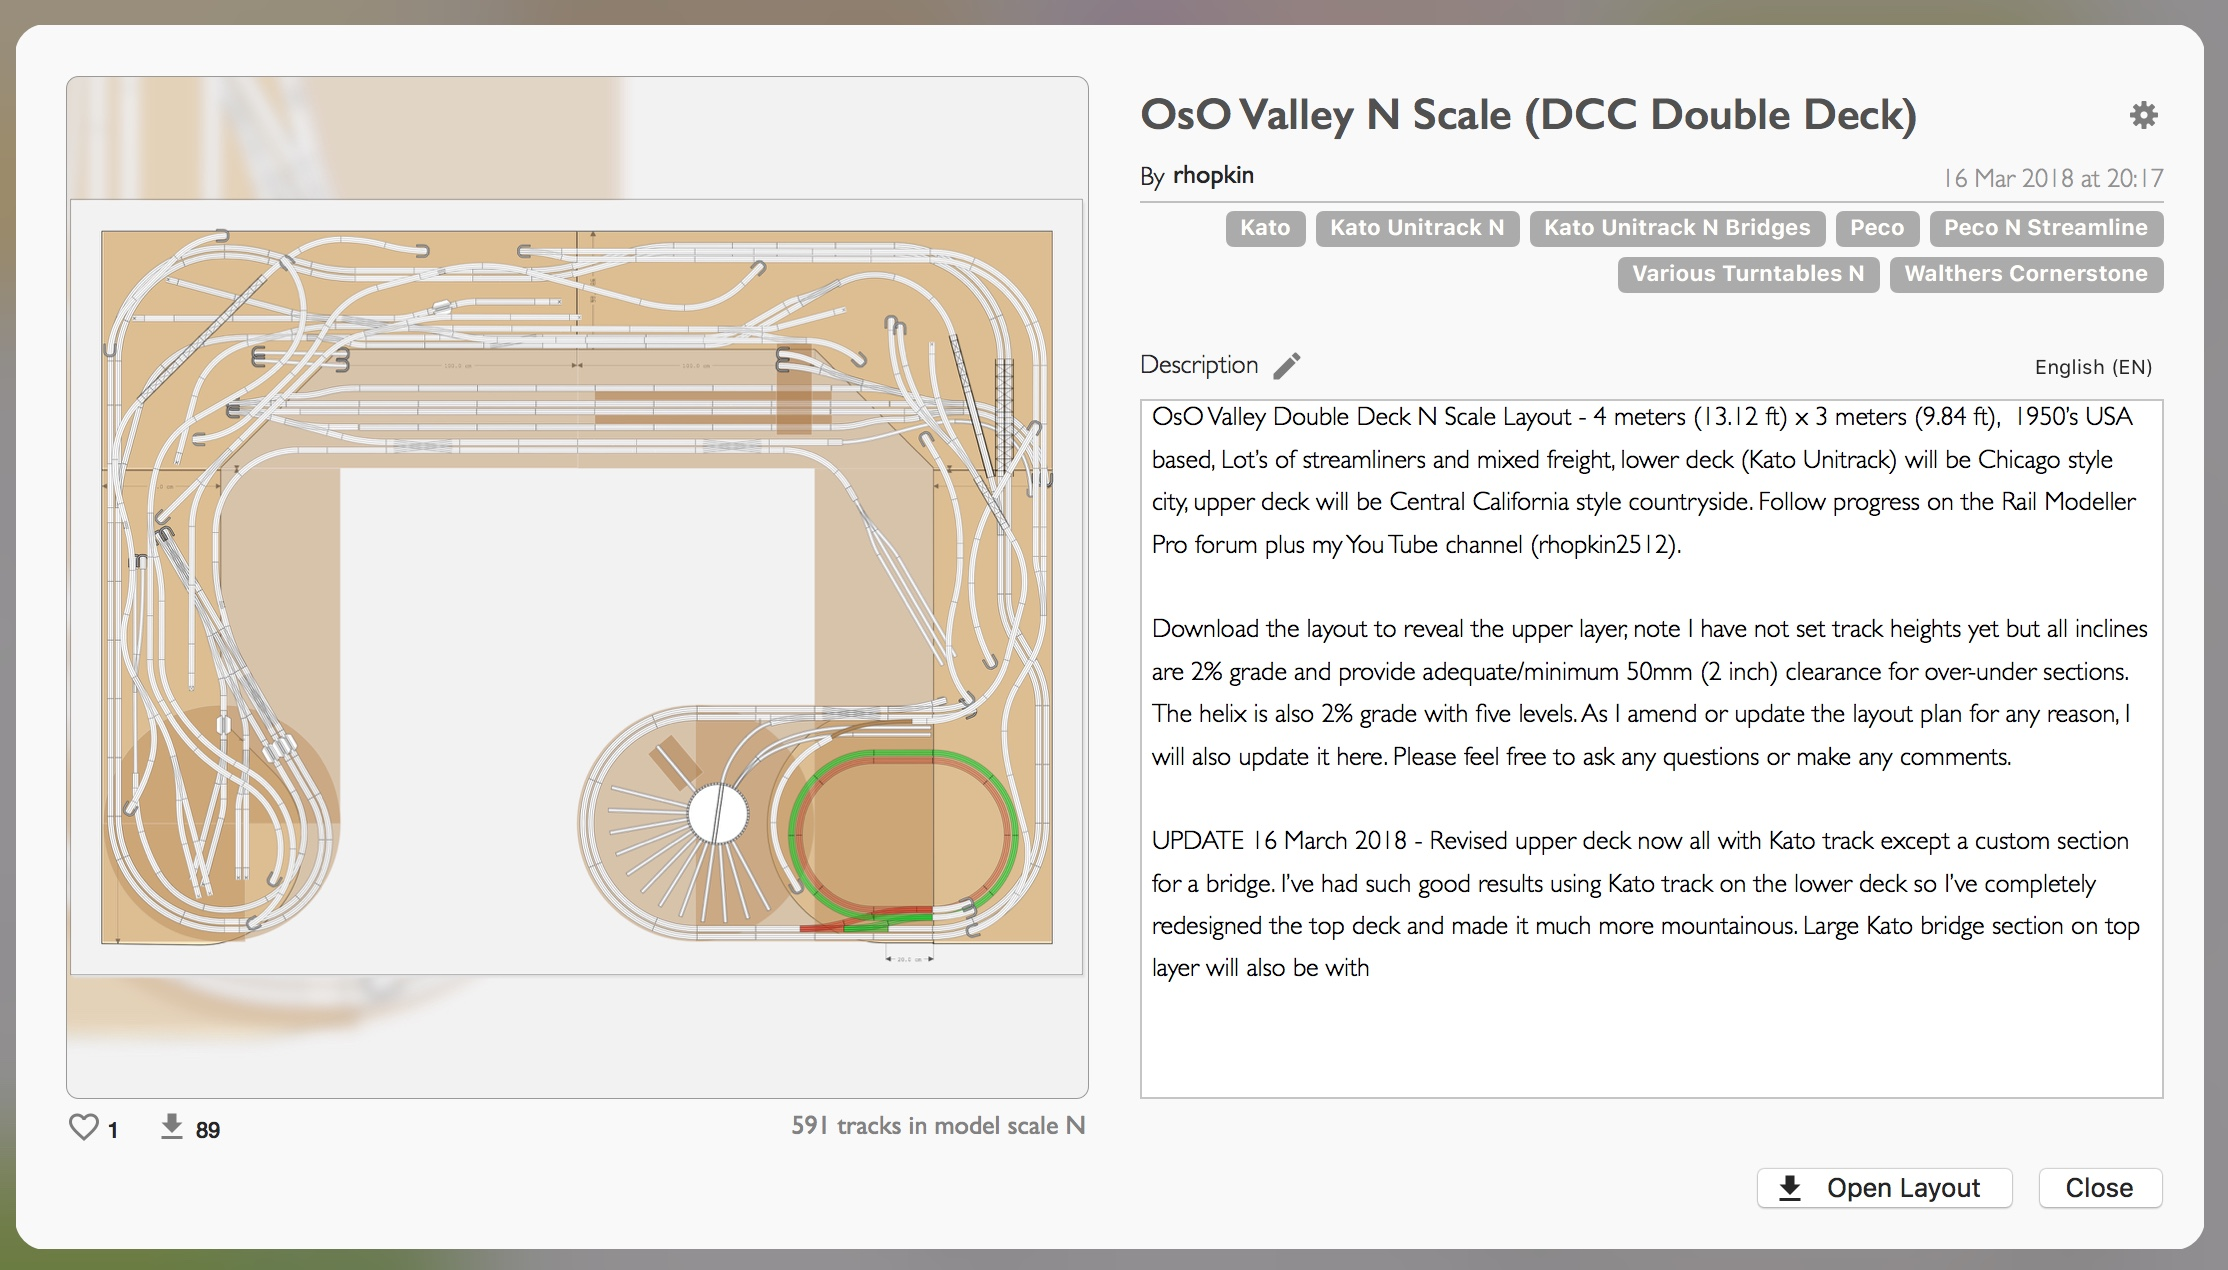 OsO Valley (DCC Double Deck).jpeg